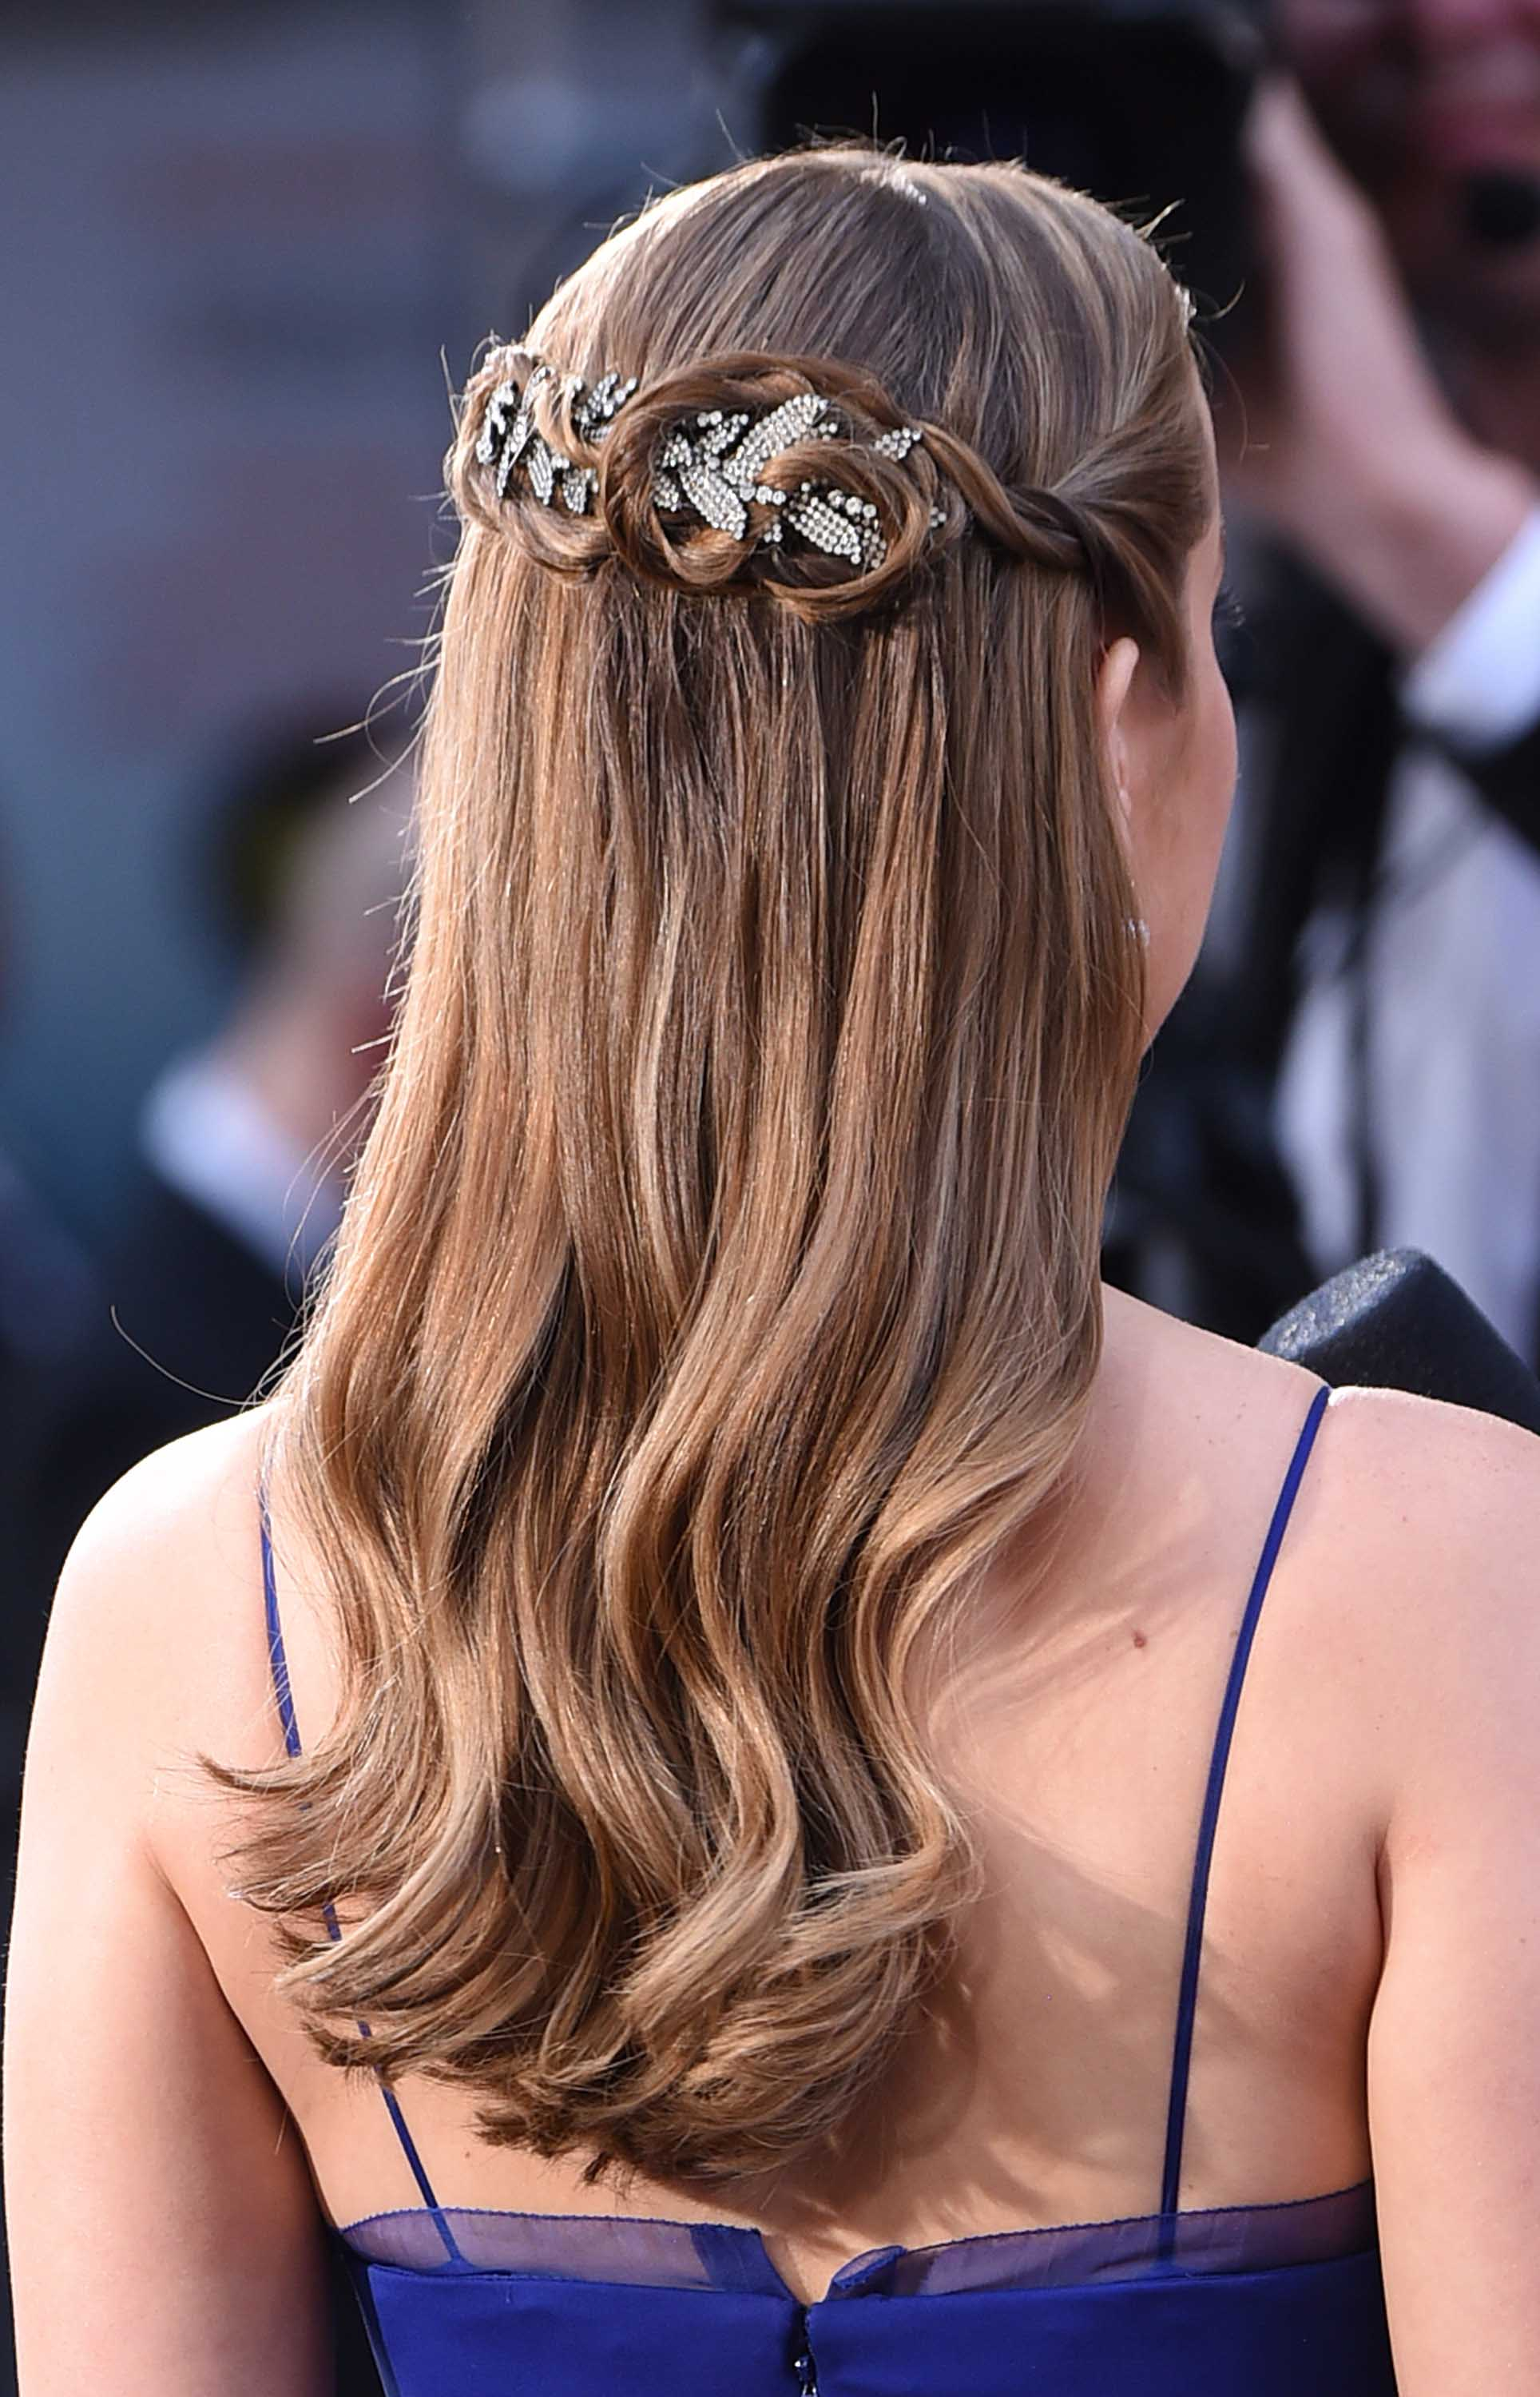 hair accessories 2016: All Things Hair - IMAGE - celebrity hairstyles Brie Larson half-up half-down waves